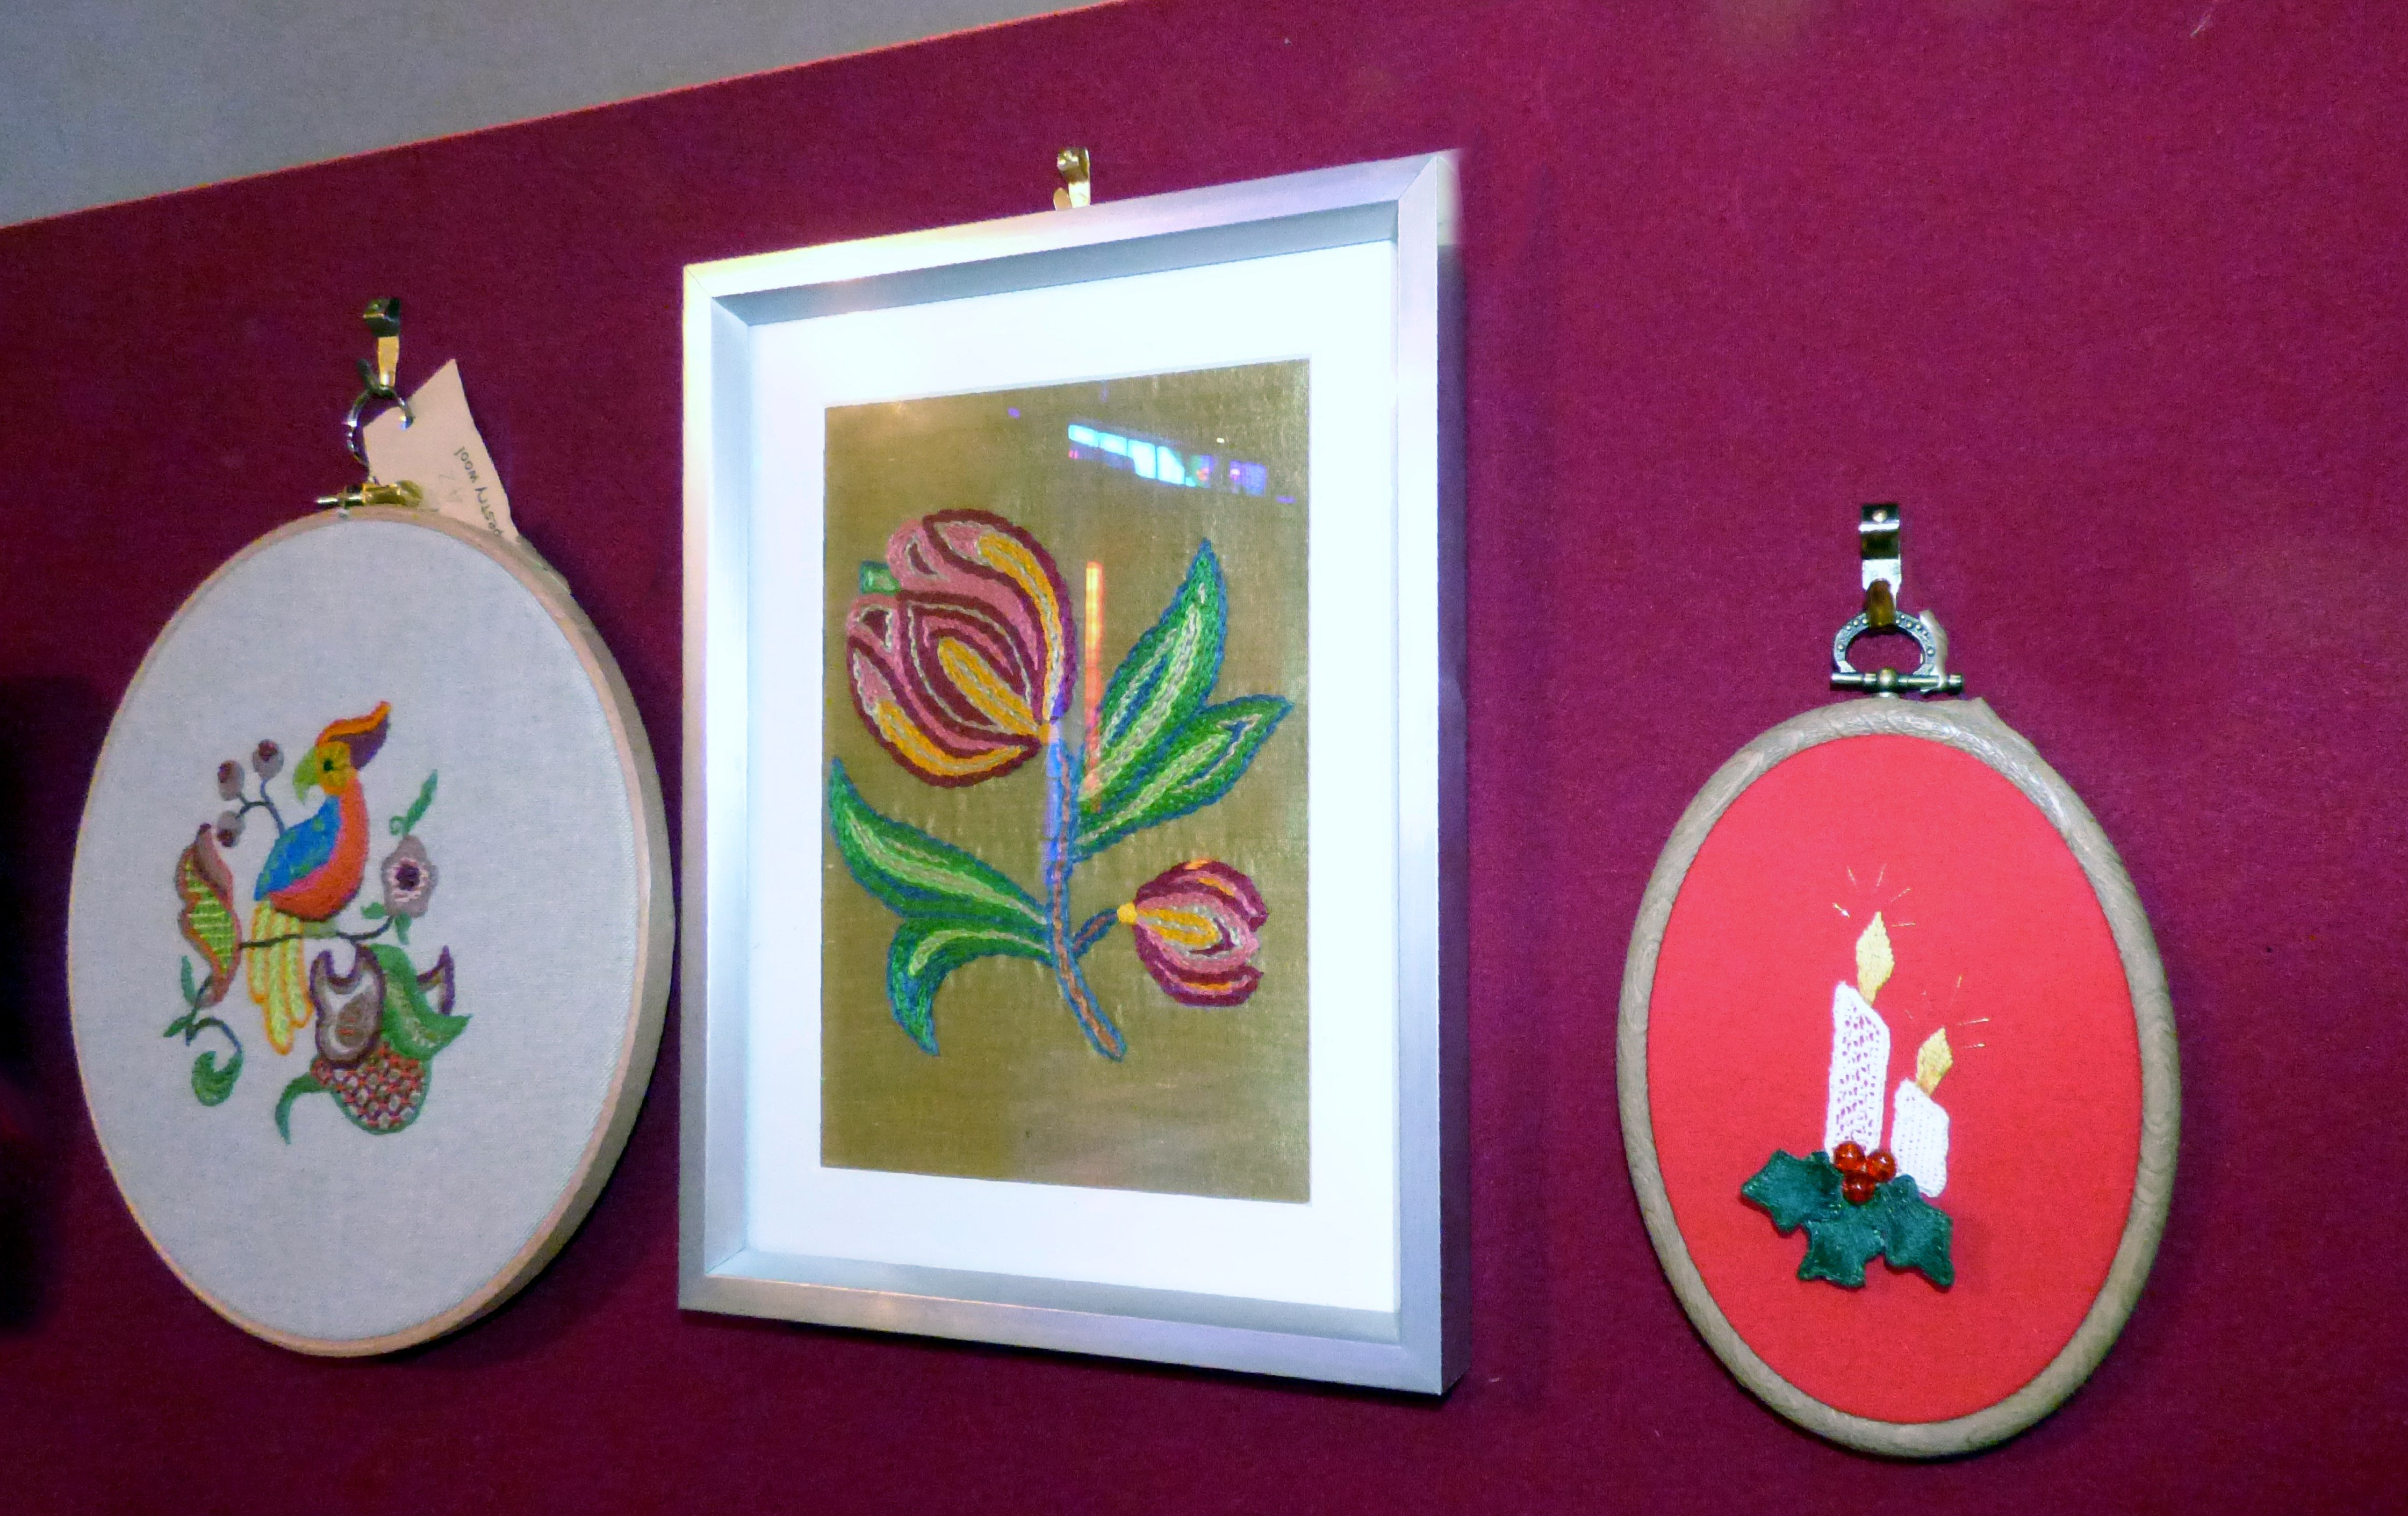 CREWELWORK by M.Andrews, ONE STITCH SAMPLER by A.Kefford and NEEDLE LACE by J.McParland, at Embroidery for Pleasure exhibition, Liverpool Metropolitan Cathedral 2016